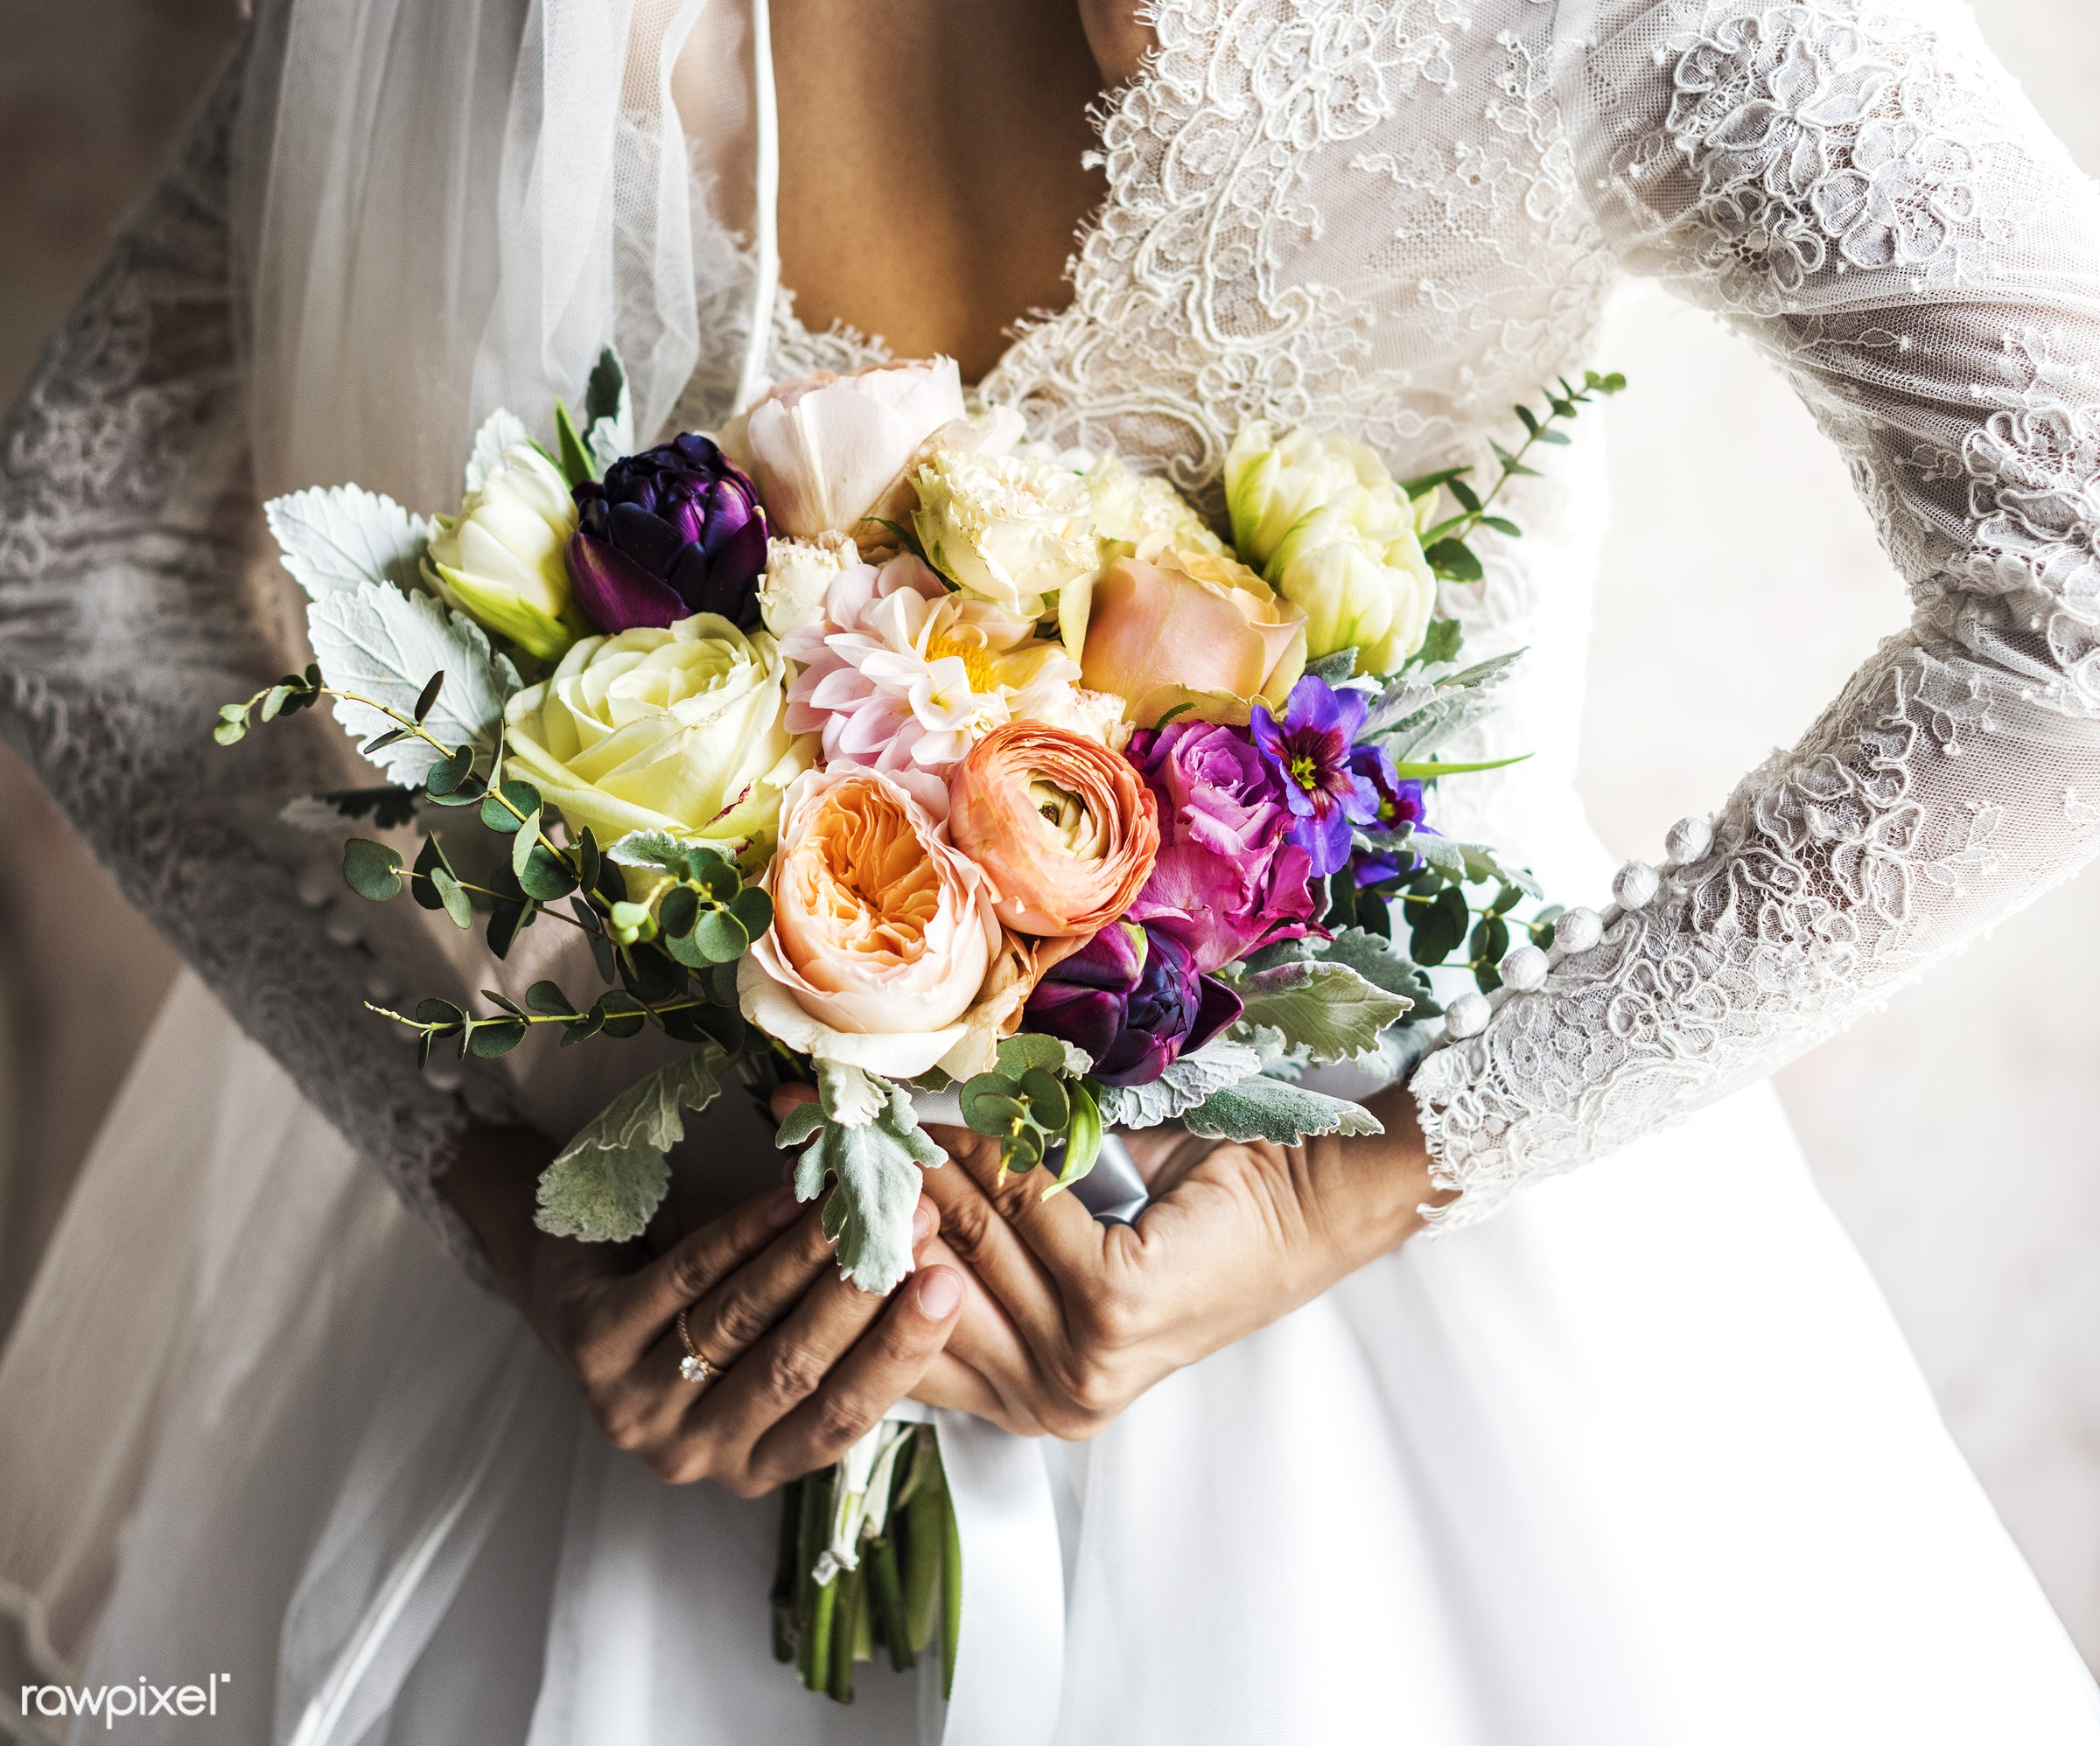 bouquet, ranunculus, holding, diverse, tulips, real, nature, hands, fresh, woman, mixed, flowers, flora, variety, mature,...